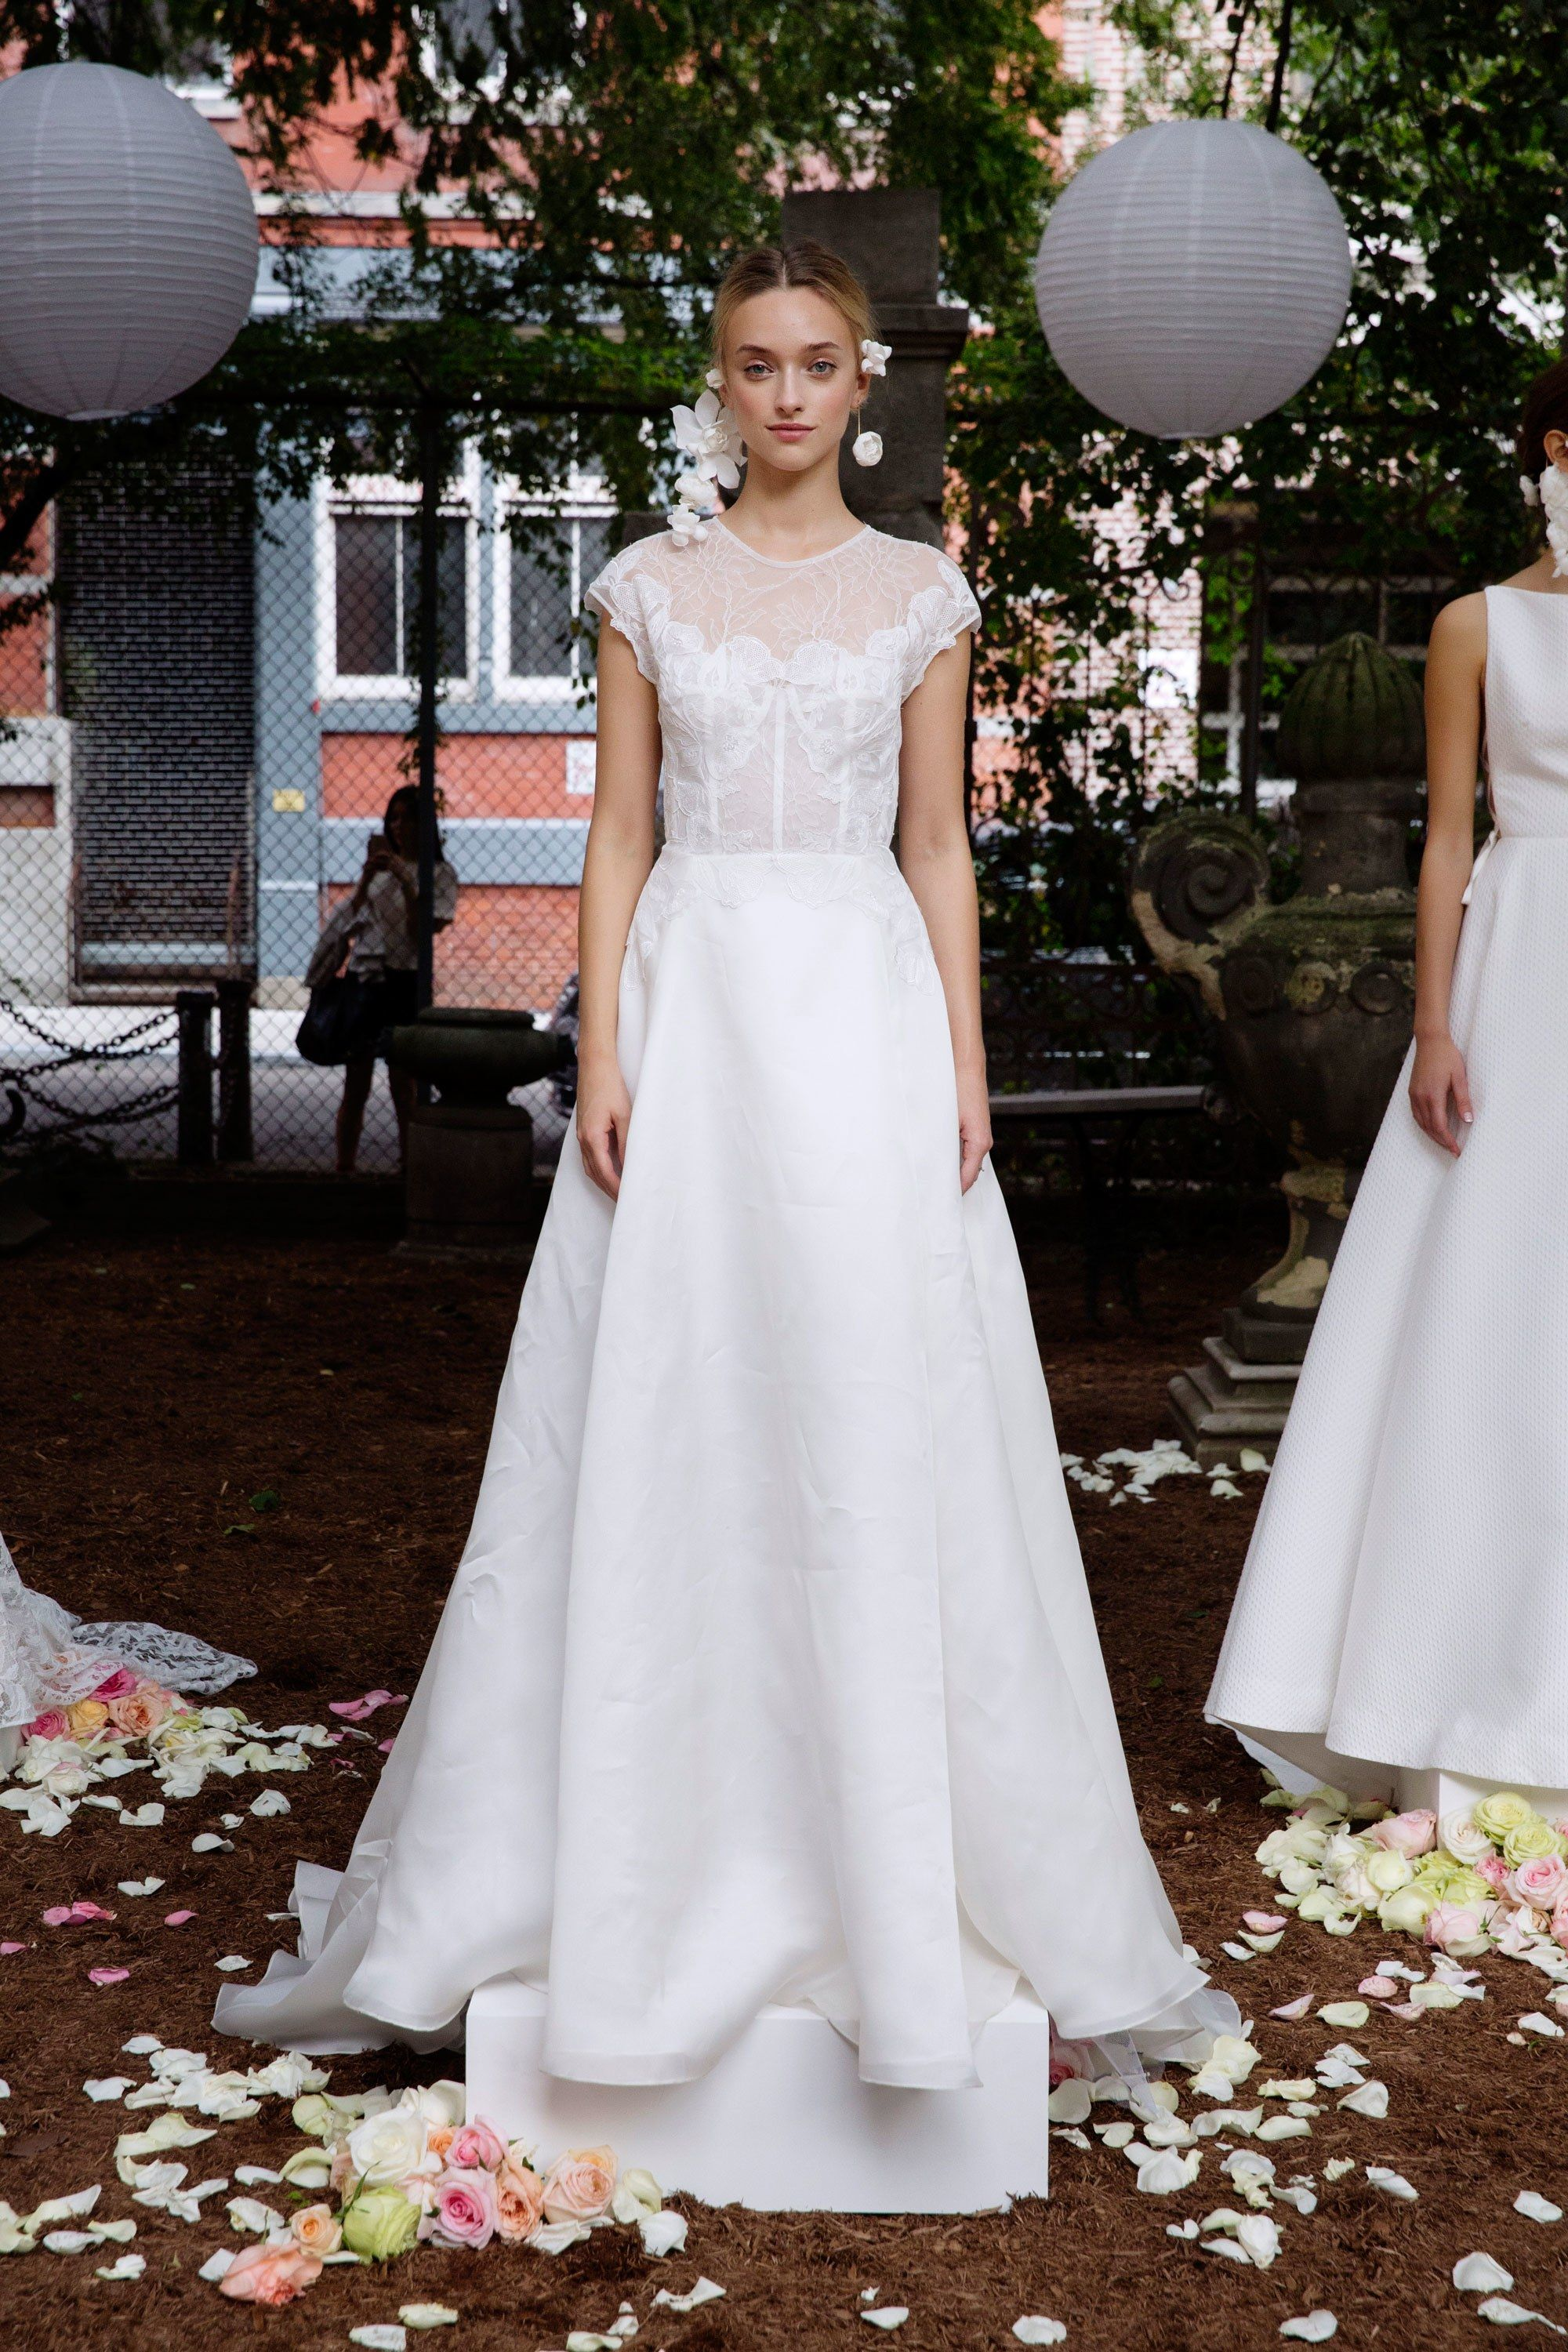 Lela rose bridal fall fashion show lela rose dress fashion